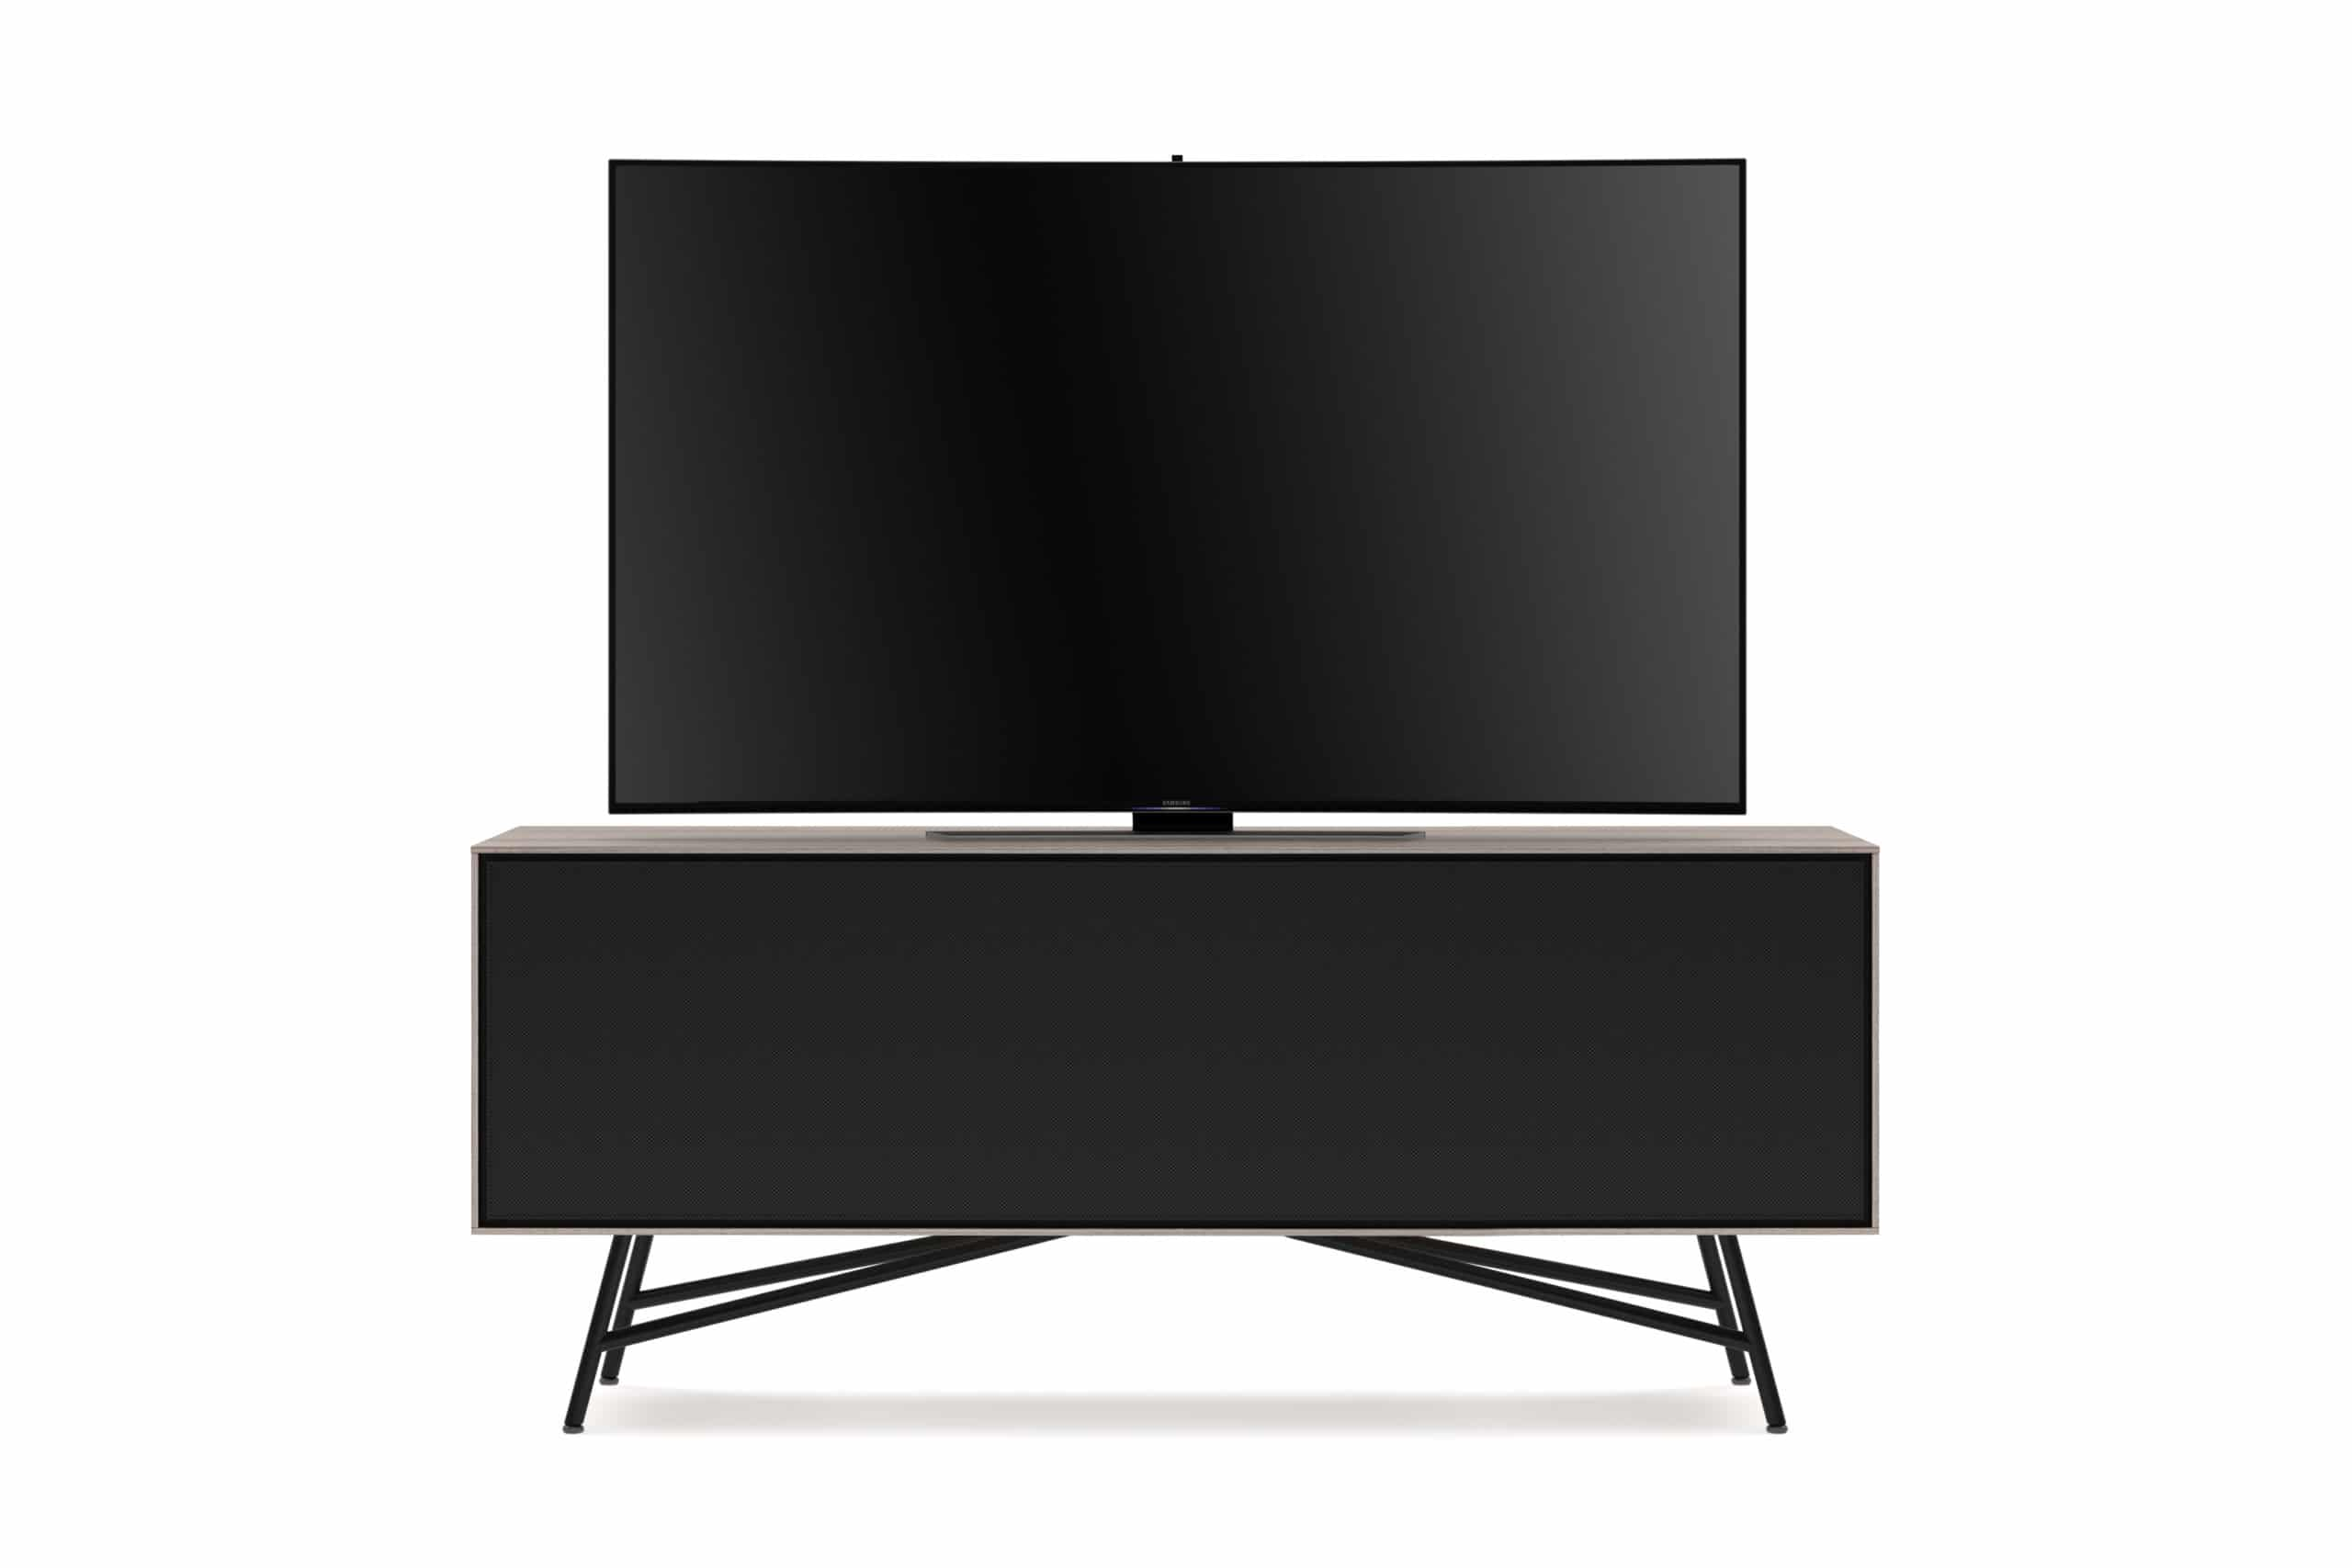 Sector 7527 Modern Media Console & TV Stand | BDI Furniture